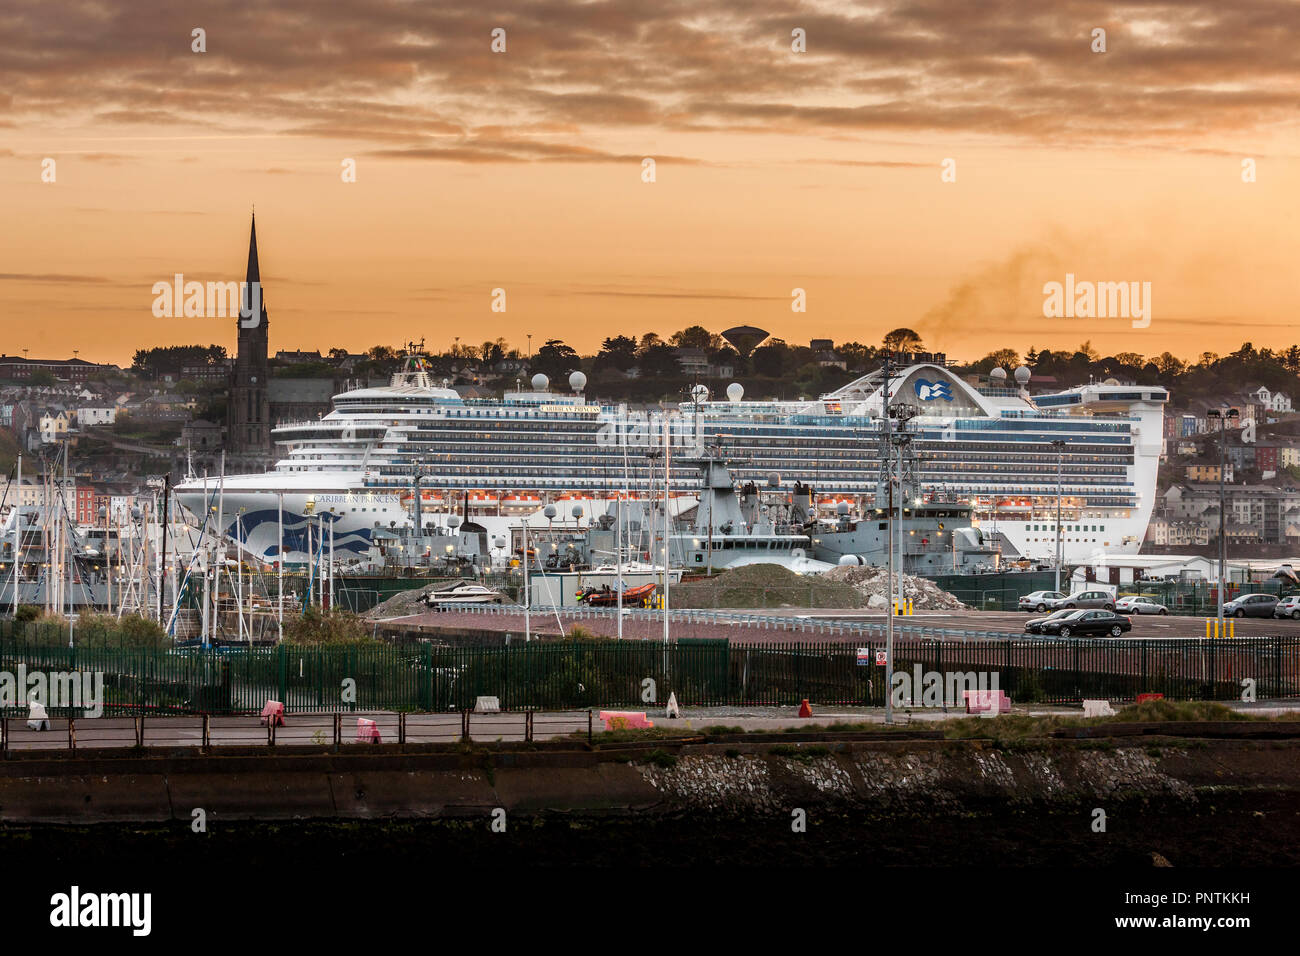 Cobh, Cork, Ireland. 22nd April, 2017.  Cruise liner Caribbean Princess passing  the Houlbowline Naval Base at dawn prior to her final turning manoeuv - Stock Image